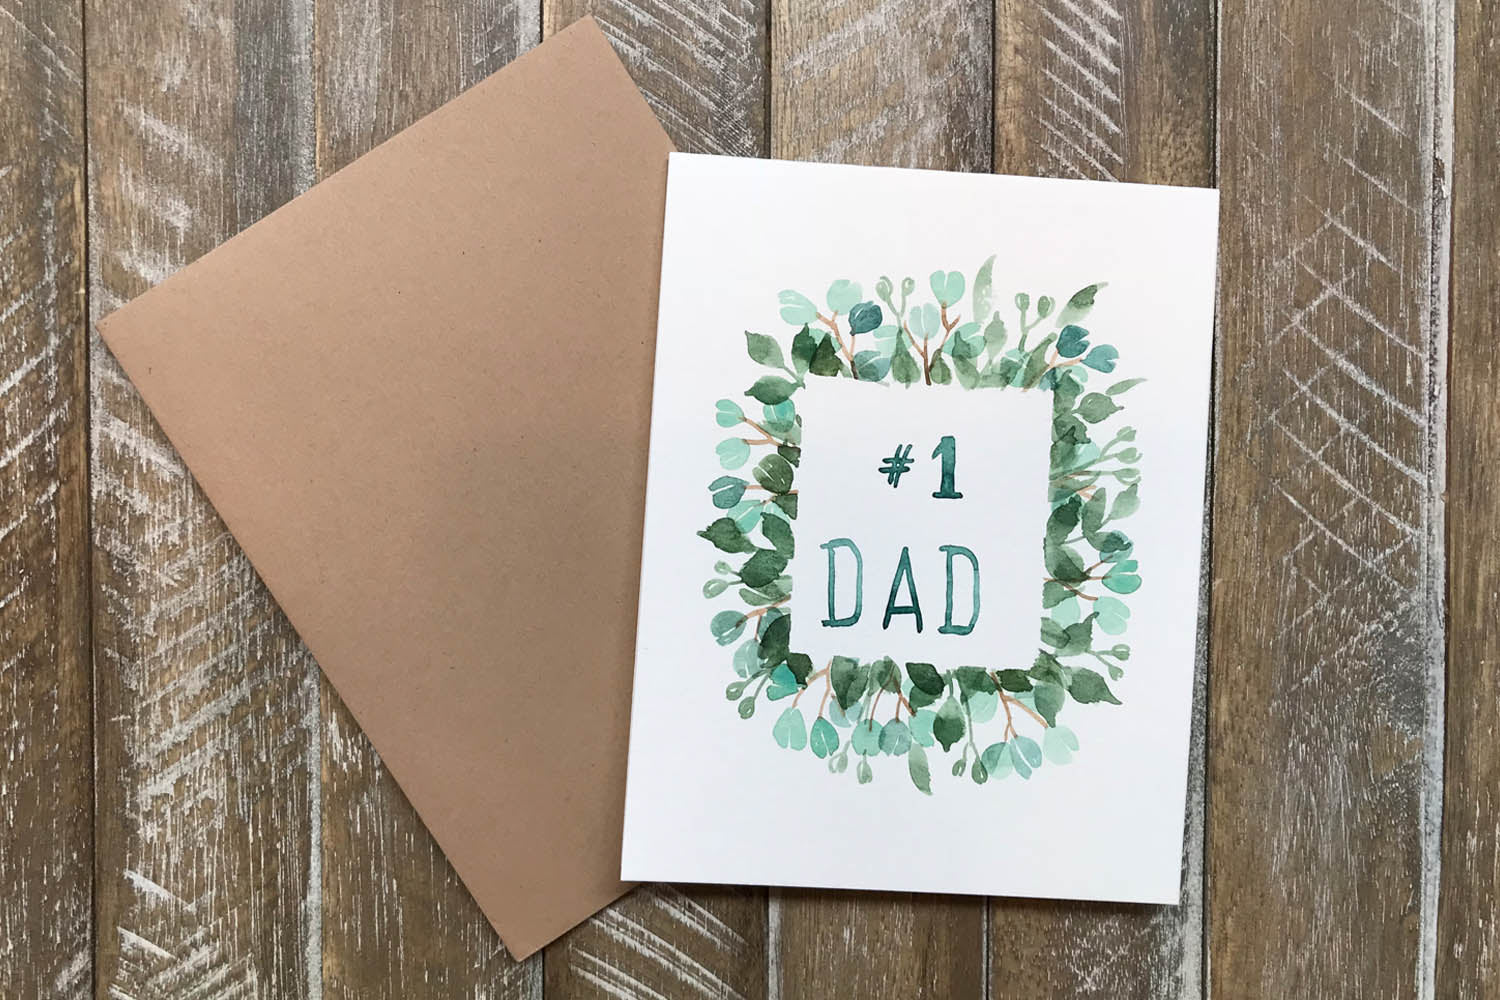 Hand painted greeting cards for dad hand painted greeting cards for dad in greeting cards m4hsunfo